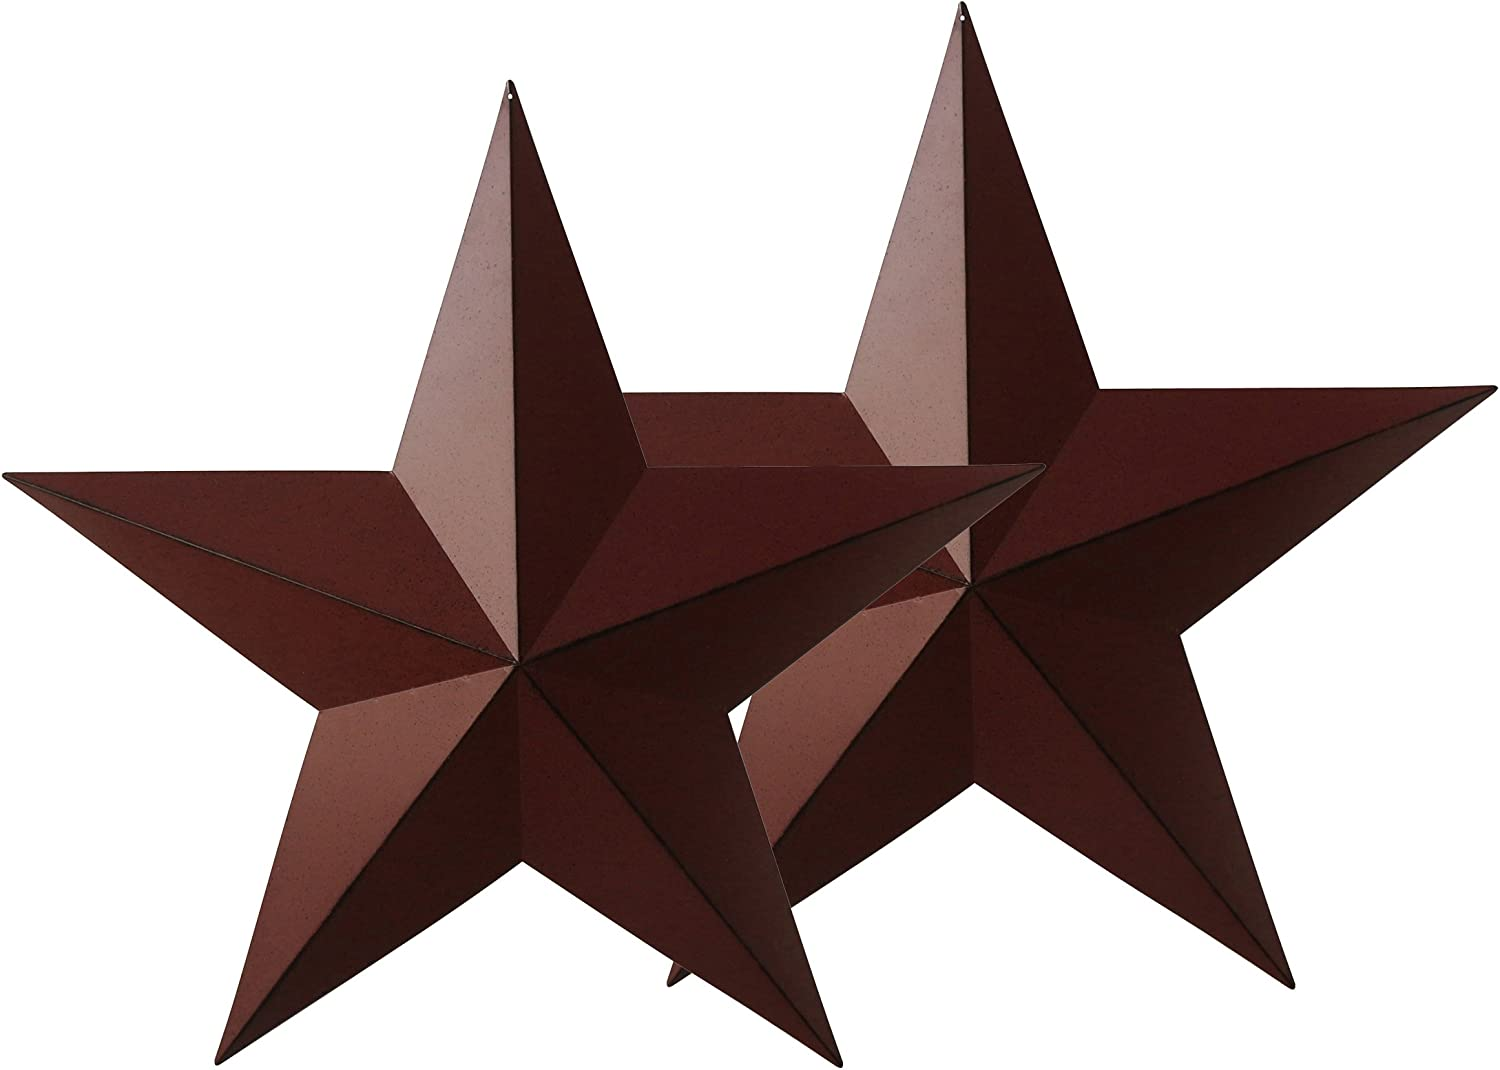 CVHOMEDECO. Country Rustic Antique Vintage Gifts Burgundy/Black Metal Barn Star Wall/Door Decor, 24-Inch, Set of 2.